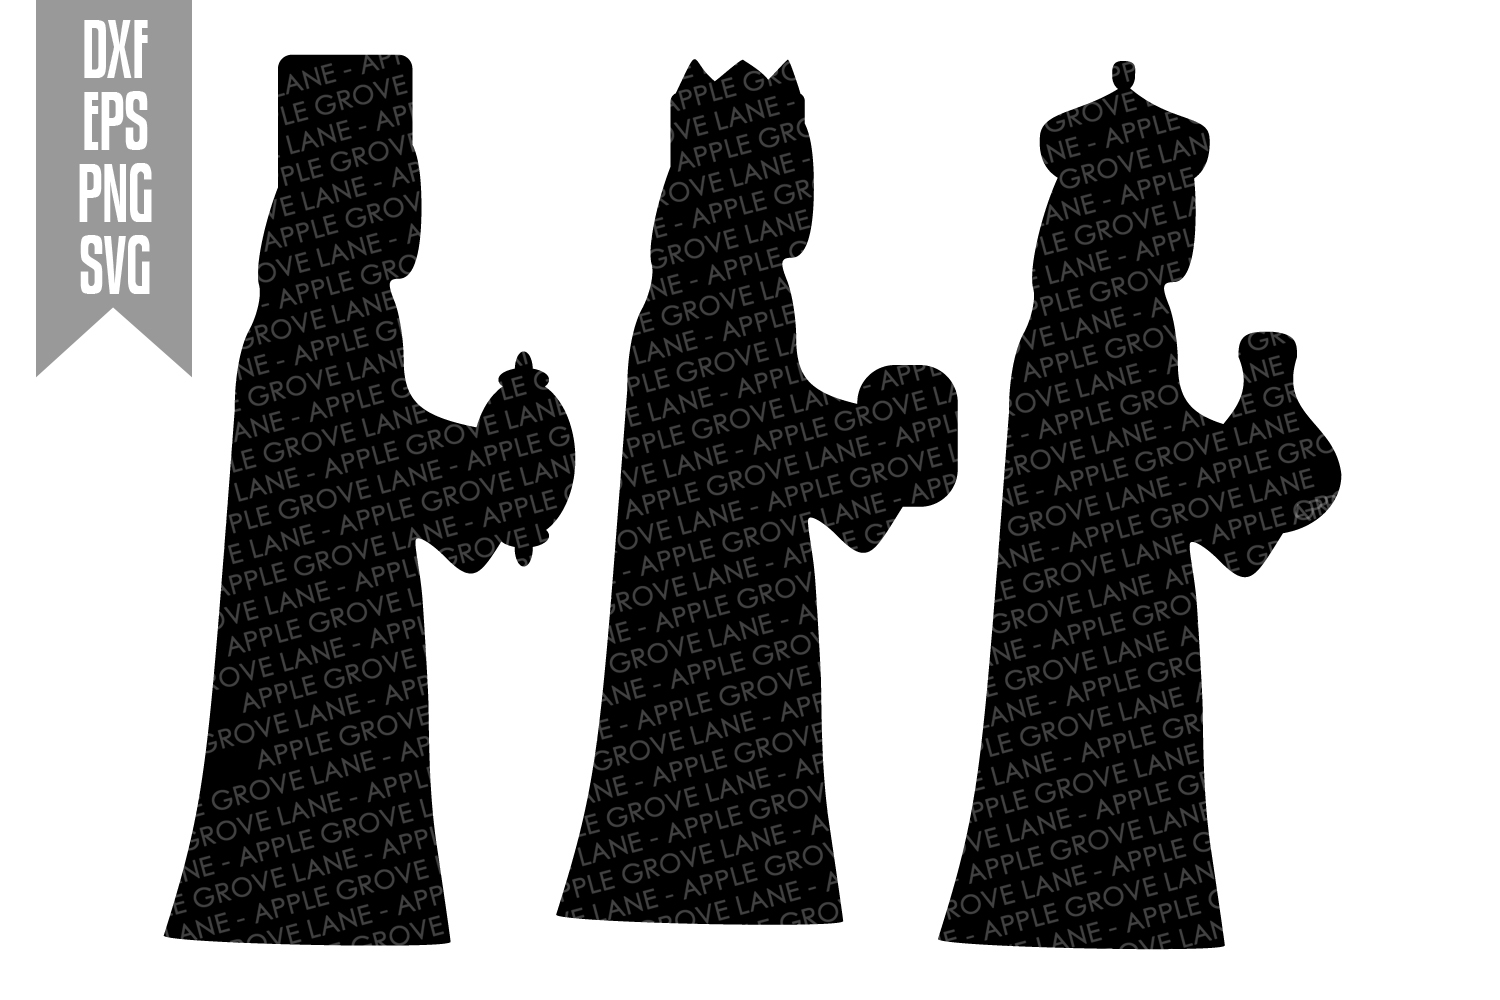 Nativity Svg Bundle - 9 designs included - Svg Cut Files example image 3